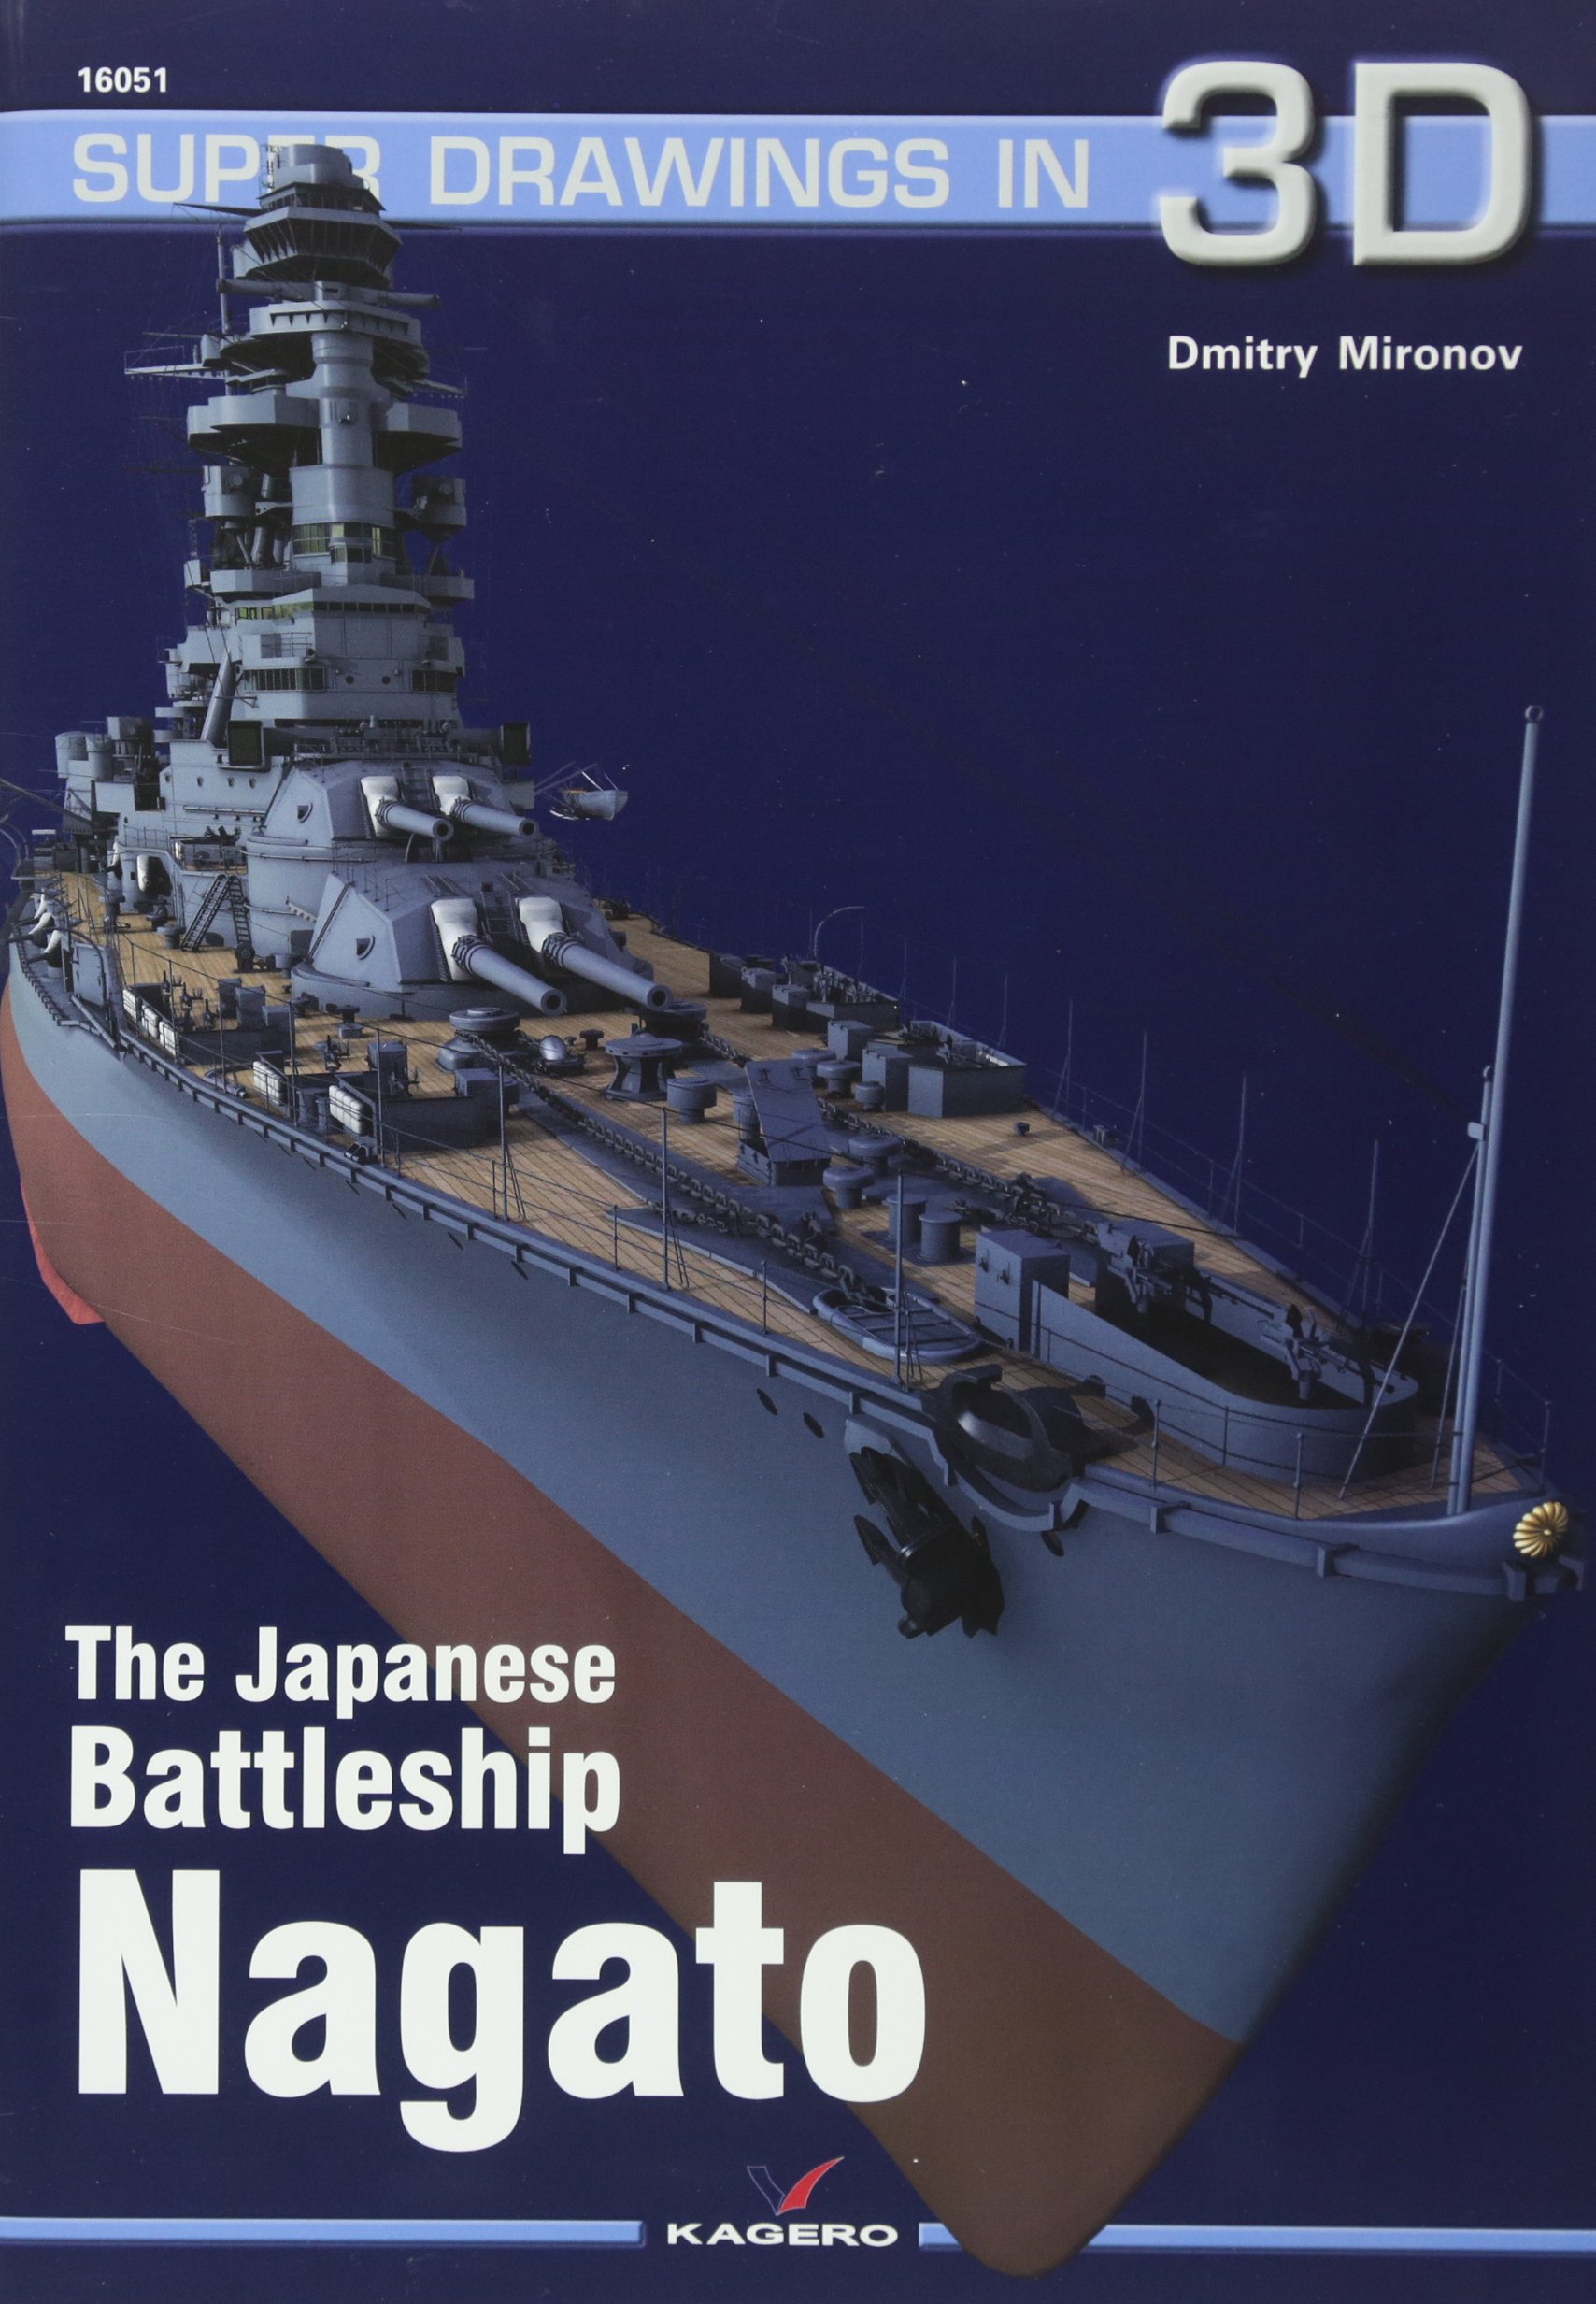 The Japanese Battleship Nagato (Super Drawings in 3D)